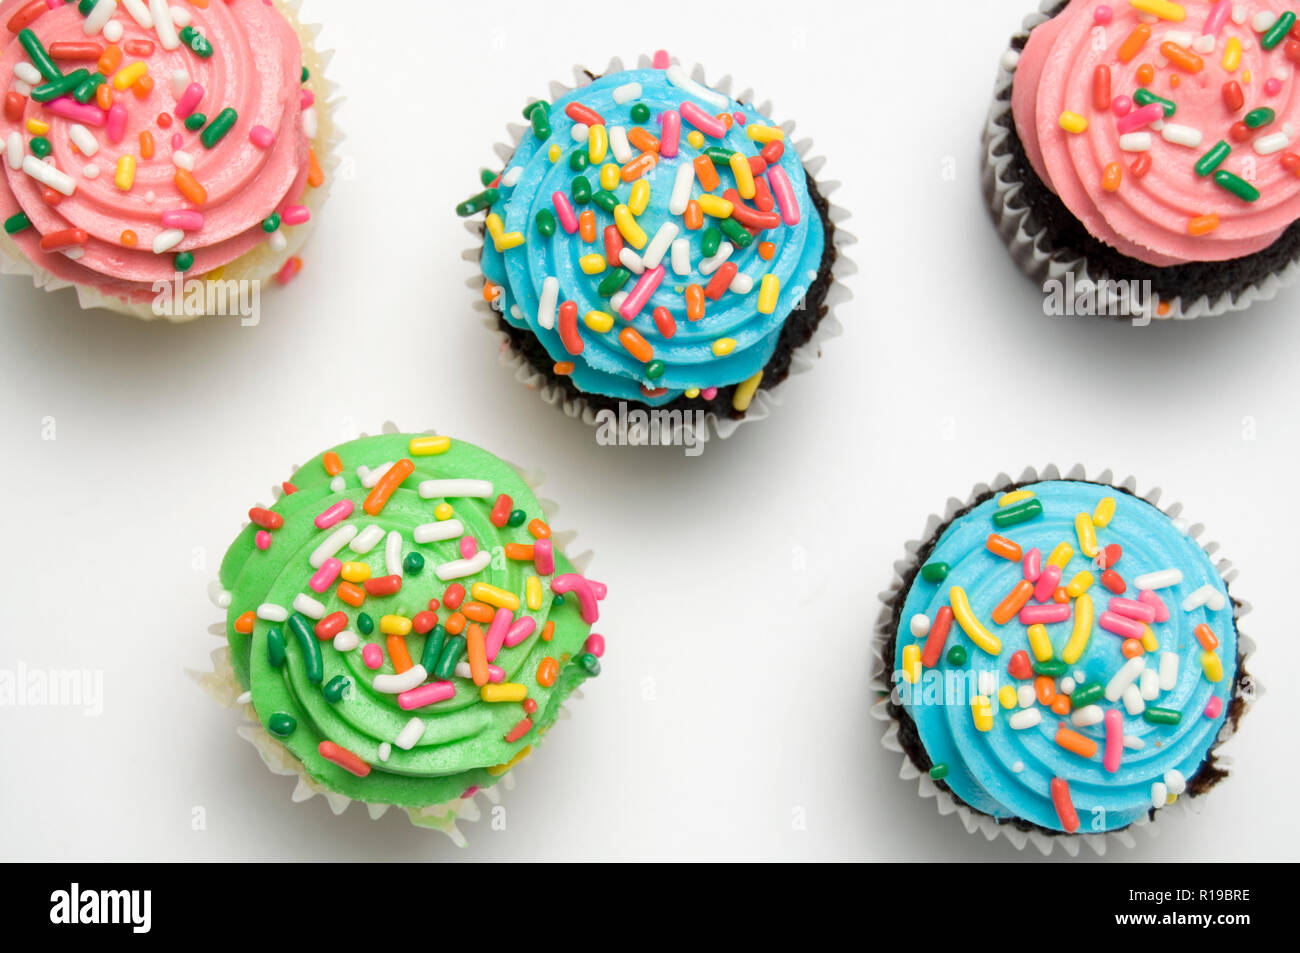 Top View Of Beautiful Delicious And Colorful Muffins For Kids Party